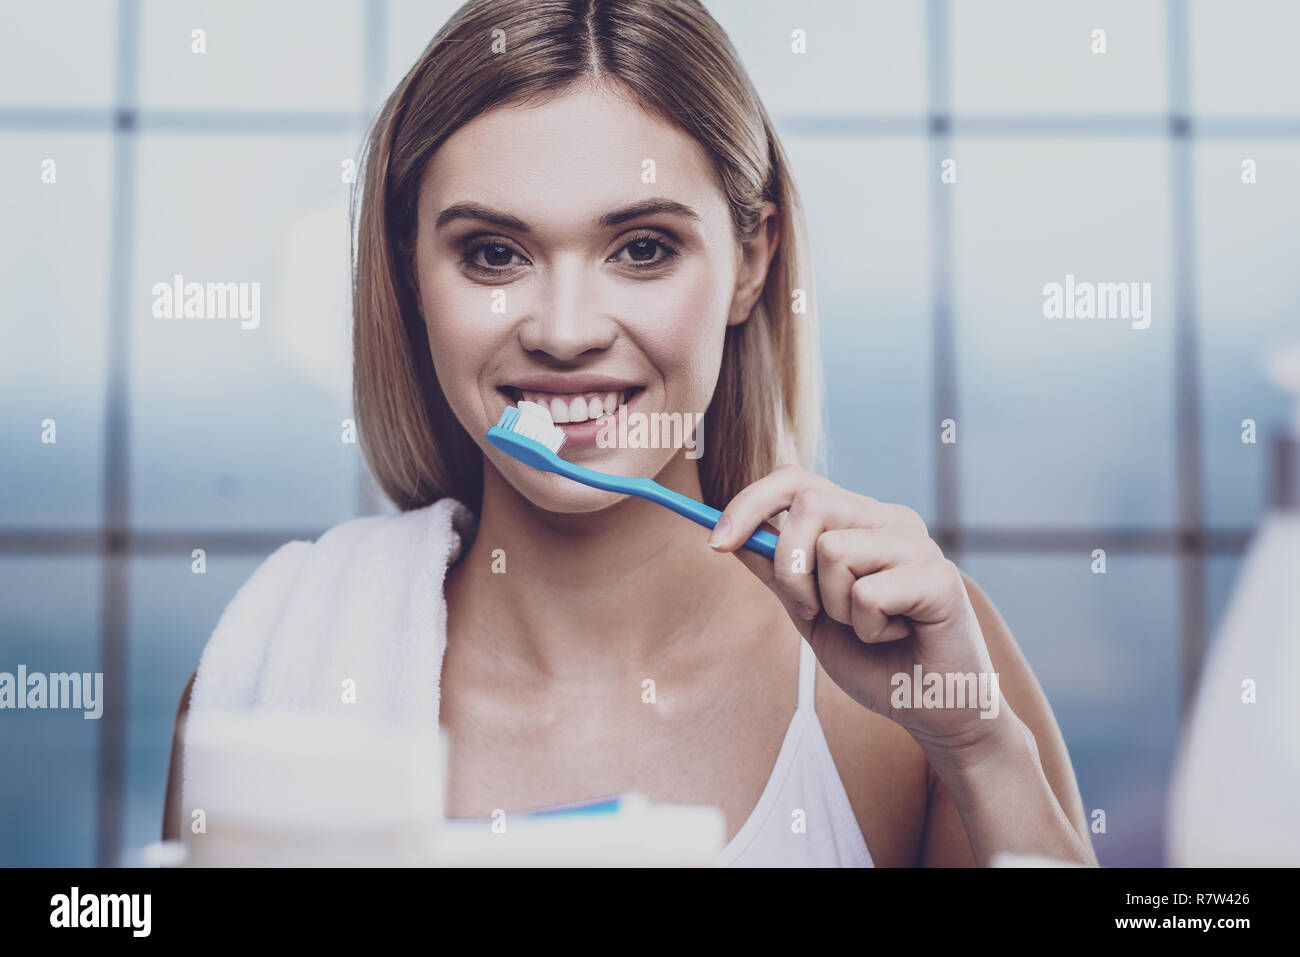 Pleasant young woman cleaning teeth Stock Photo